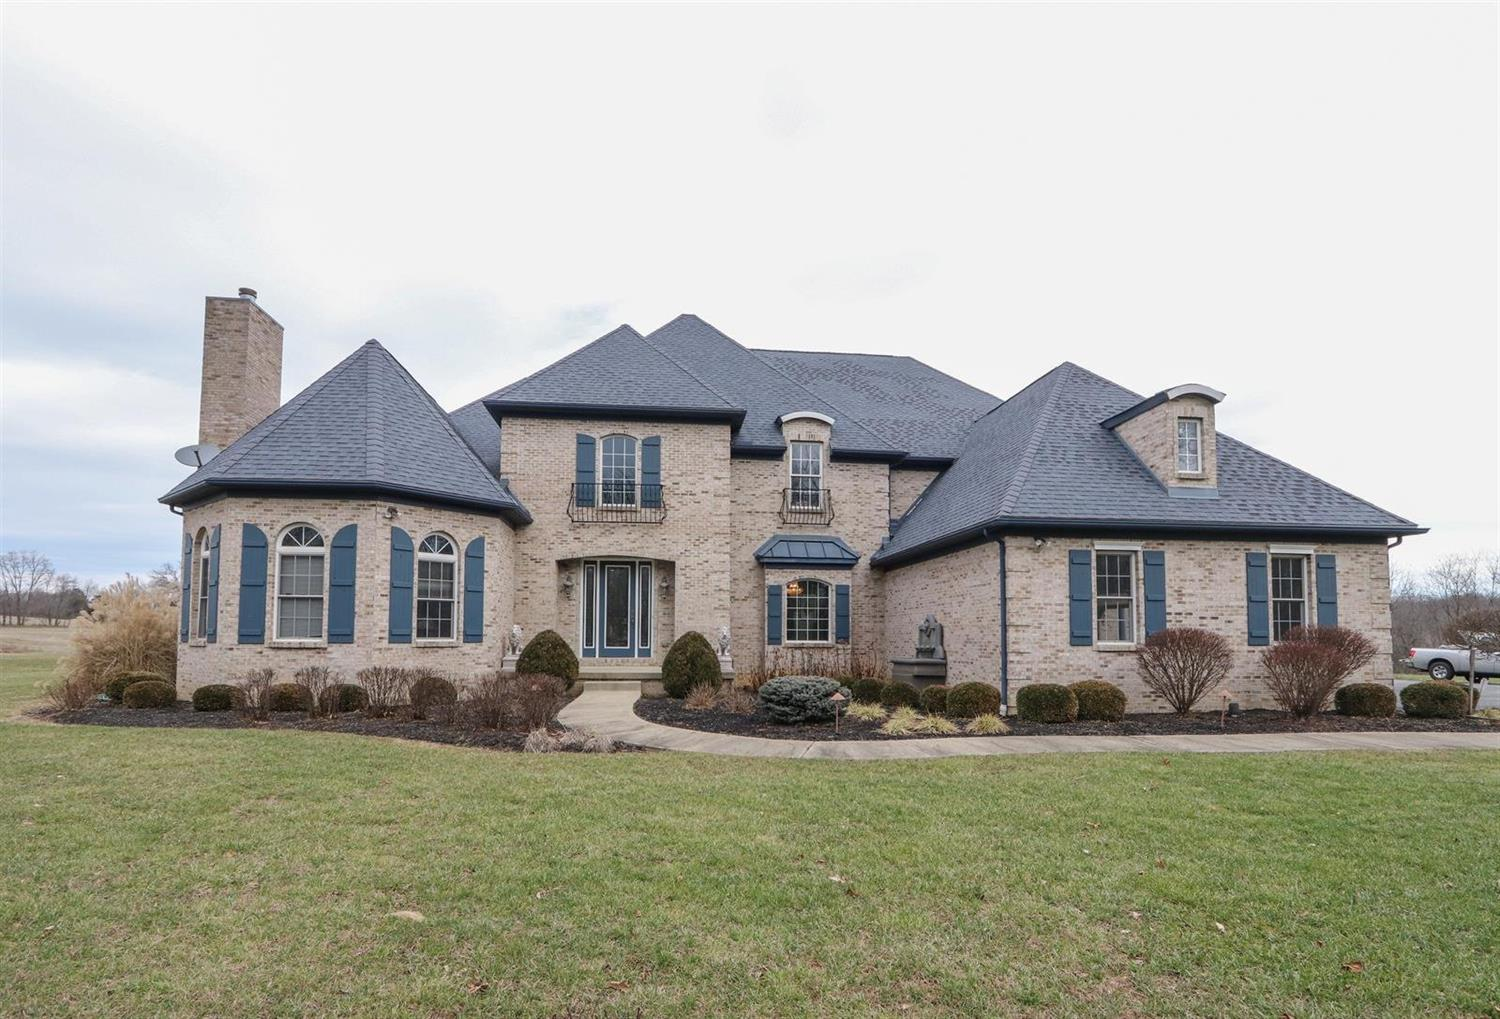 Property for sale at 2694 St Rt 125, West Union,  OH 45693